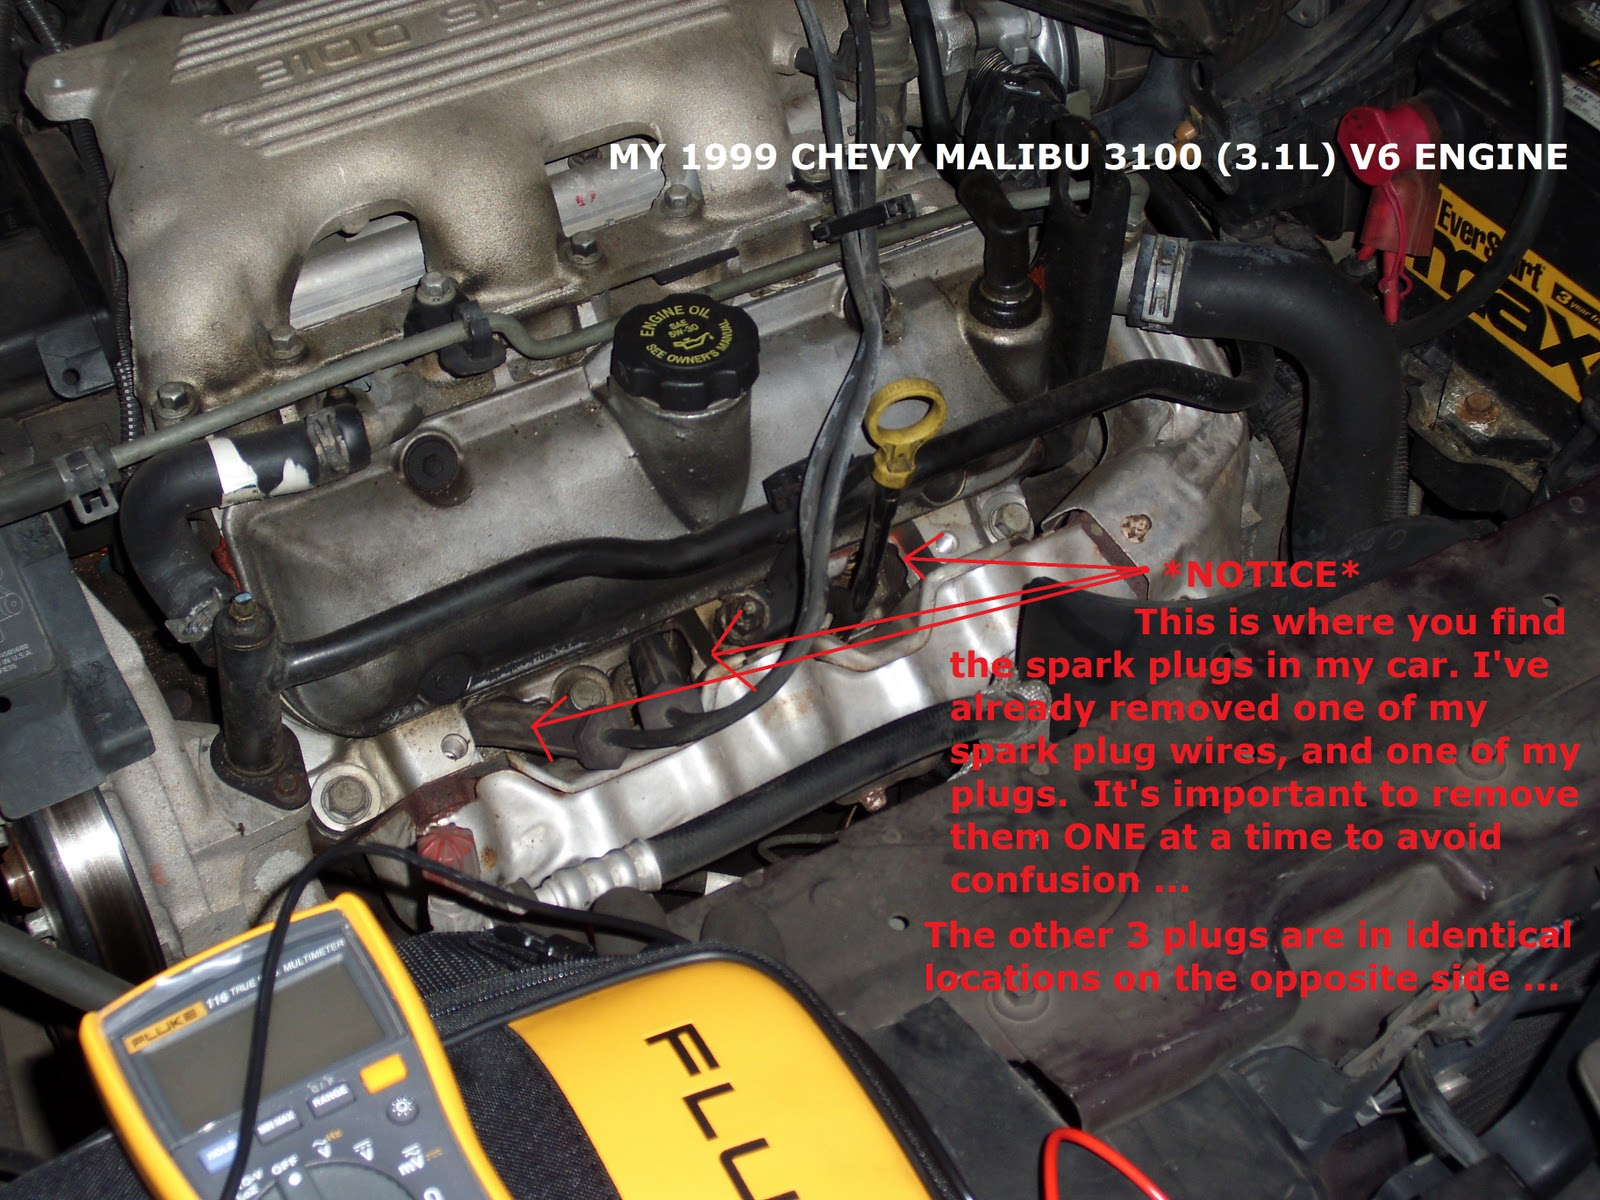 ... DSCI0643 self tune up (spark plugs & wires) on a 1999 chevy malibu ls